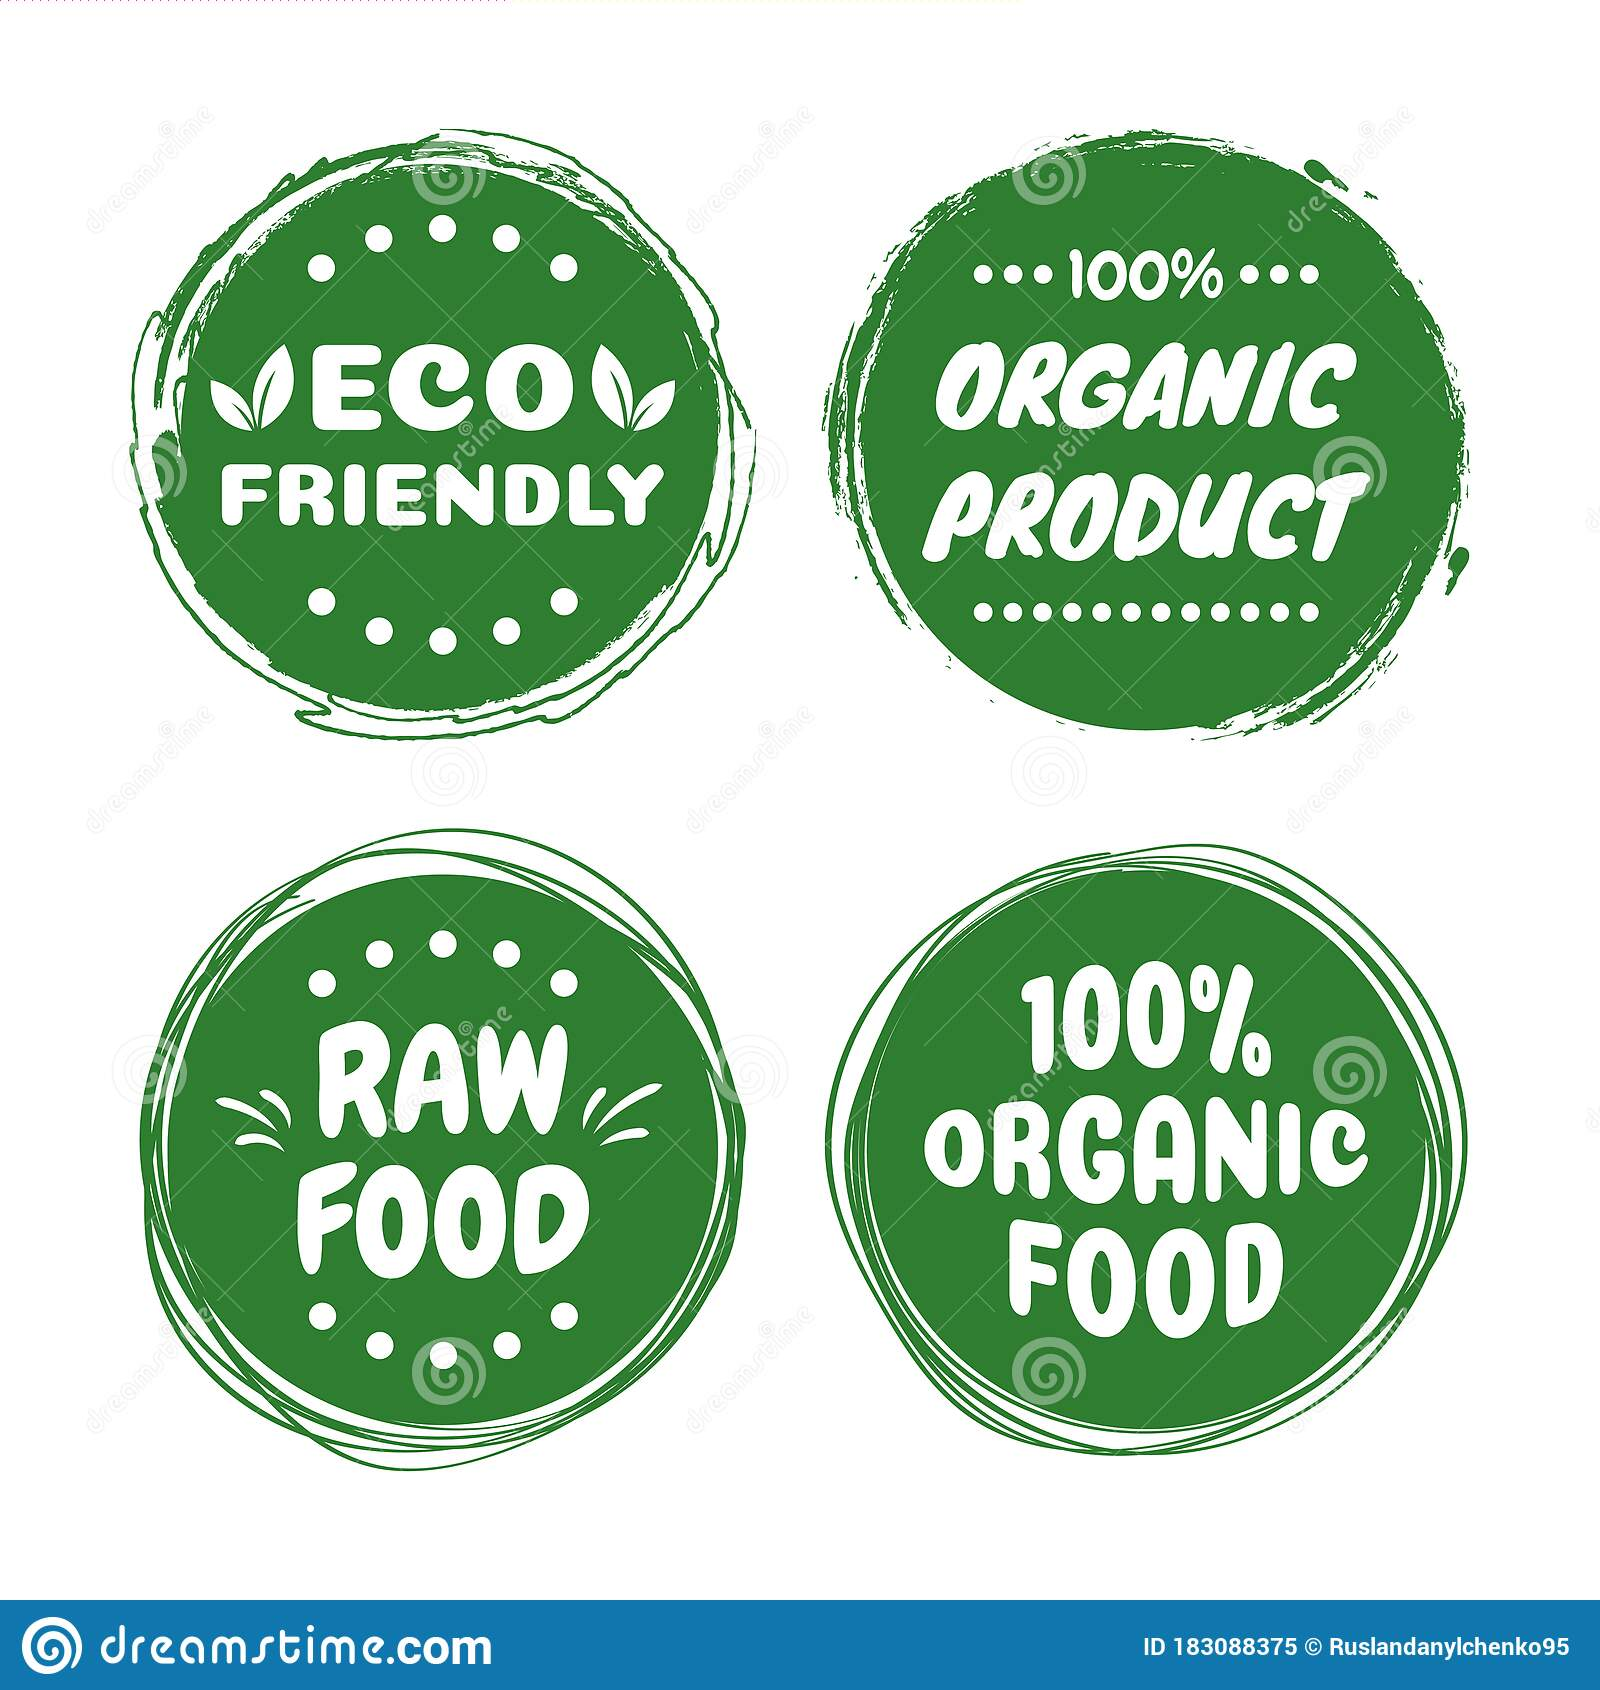 Organic Healthy Vegan Food Labels Natural Fresh Organic Food Stickers Collection Vector Graphic Design Stock Vector Illustration Of Diet Packaging 183088375